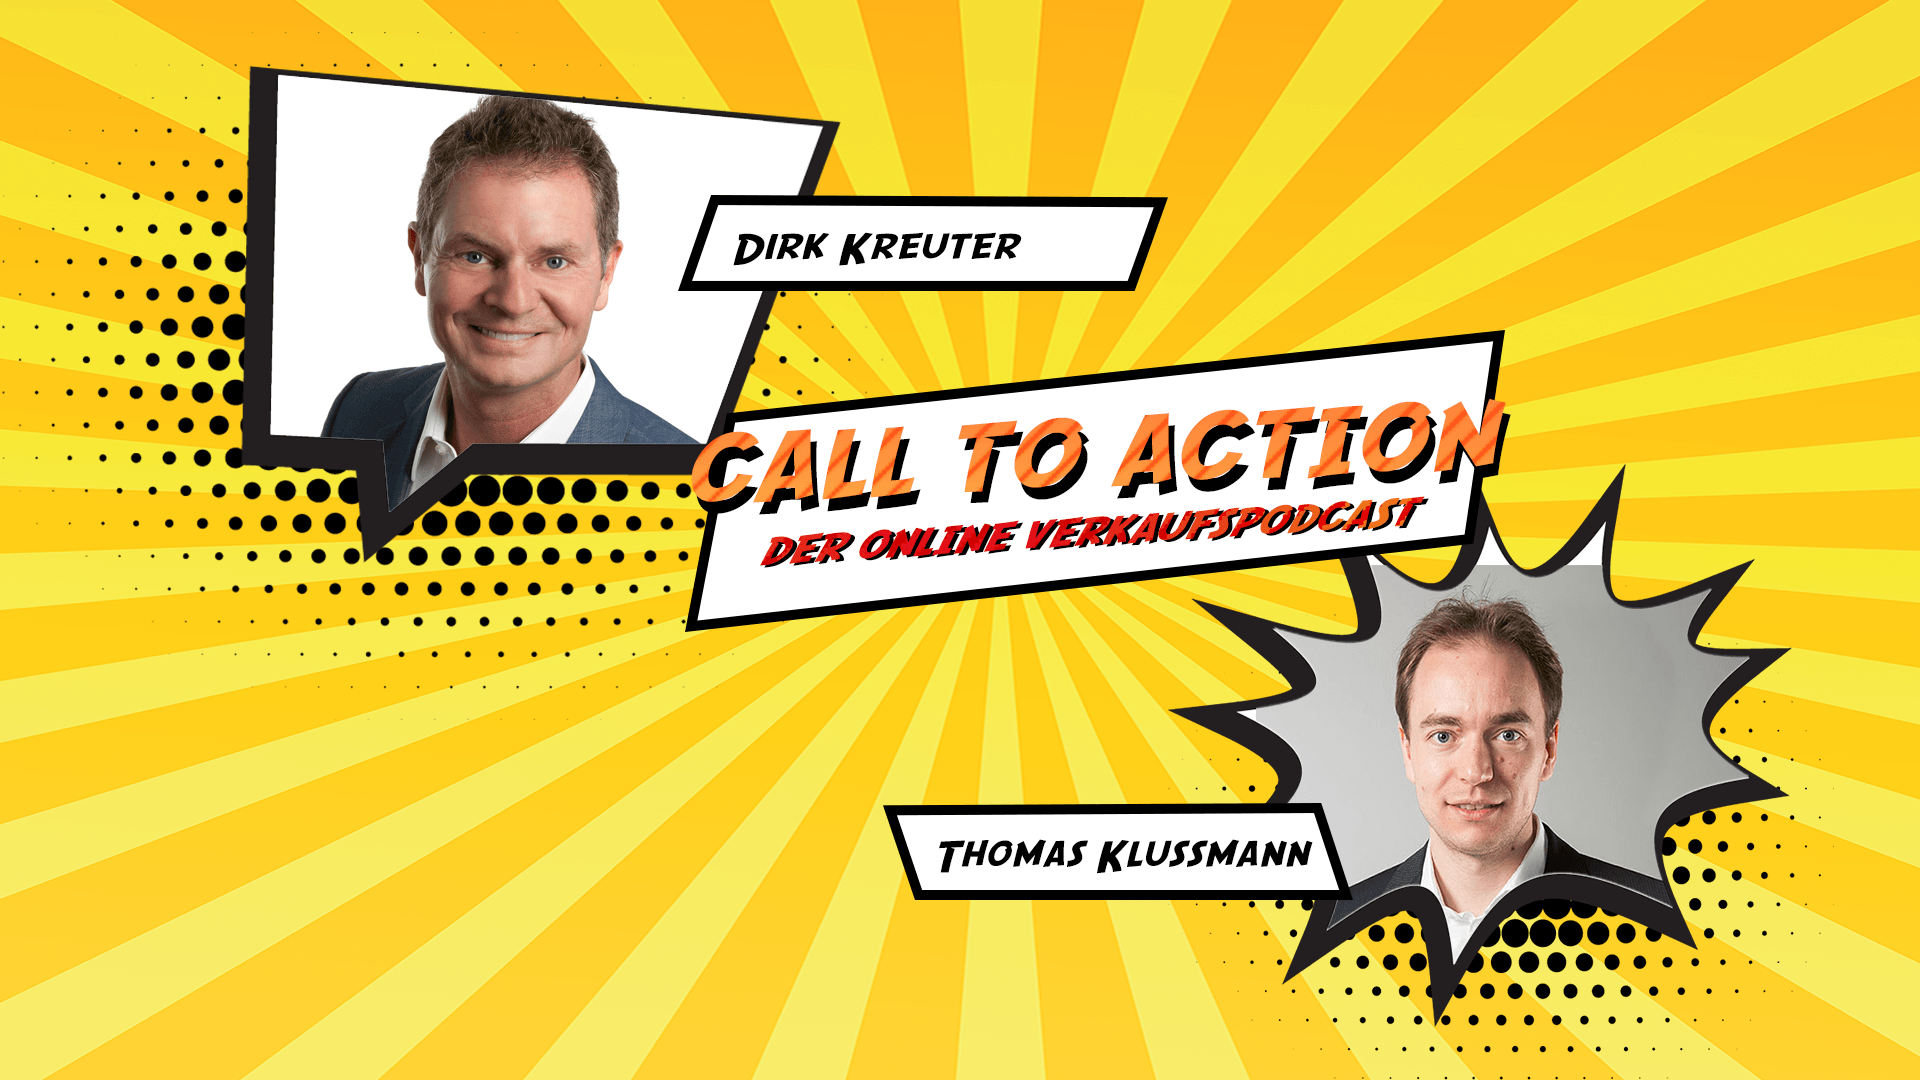 Dirk Kreuter Call to Action